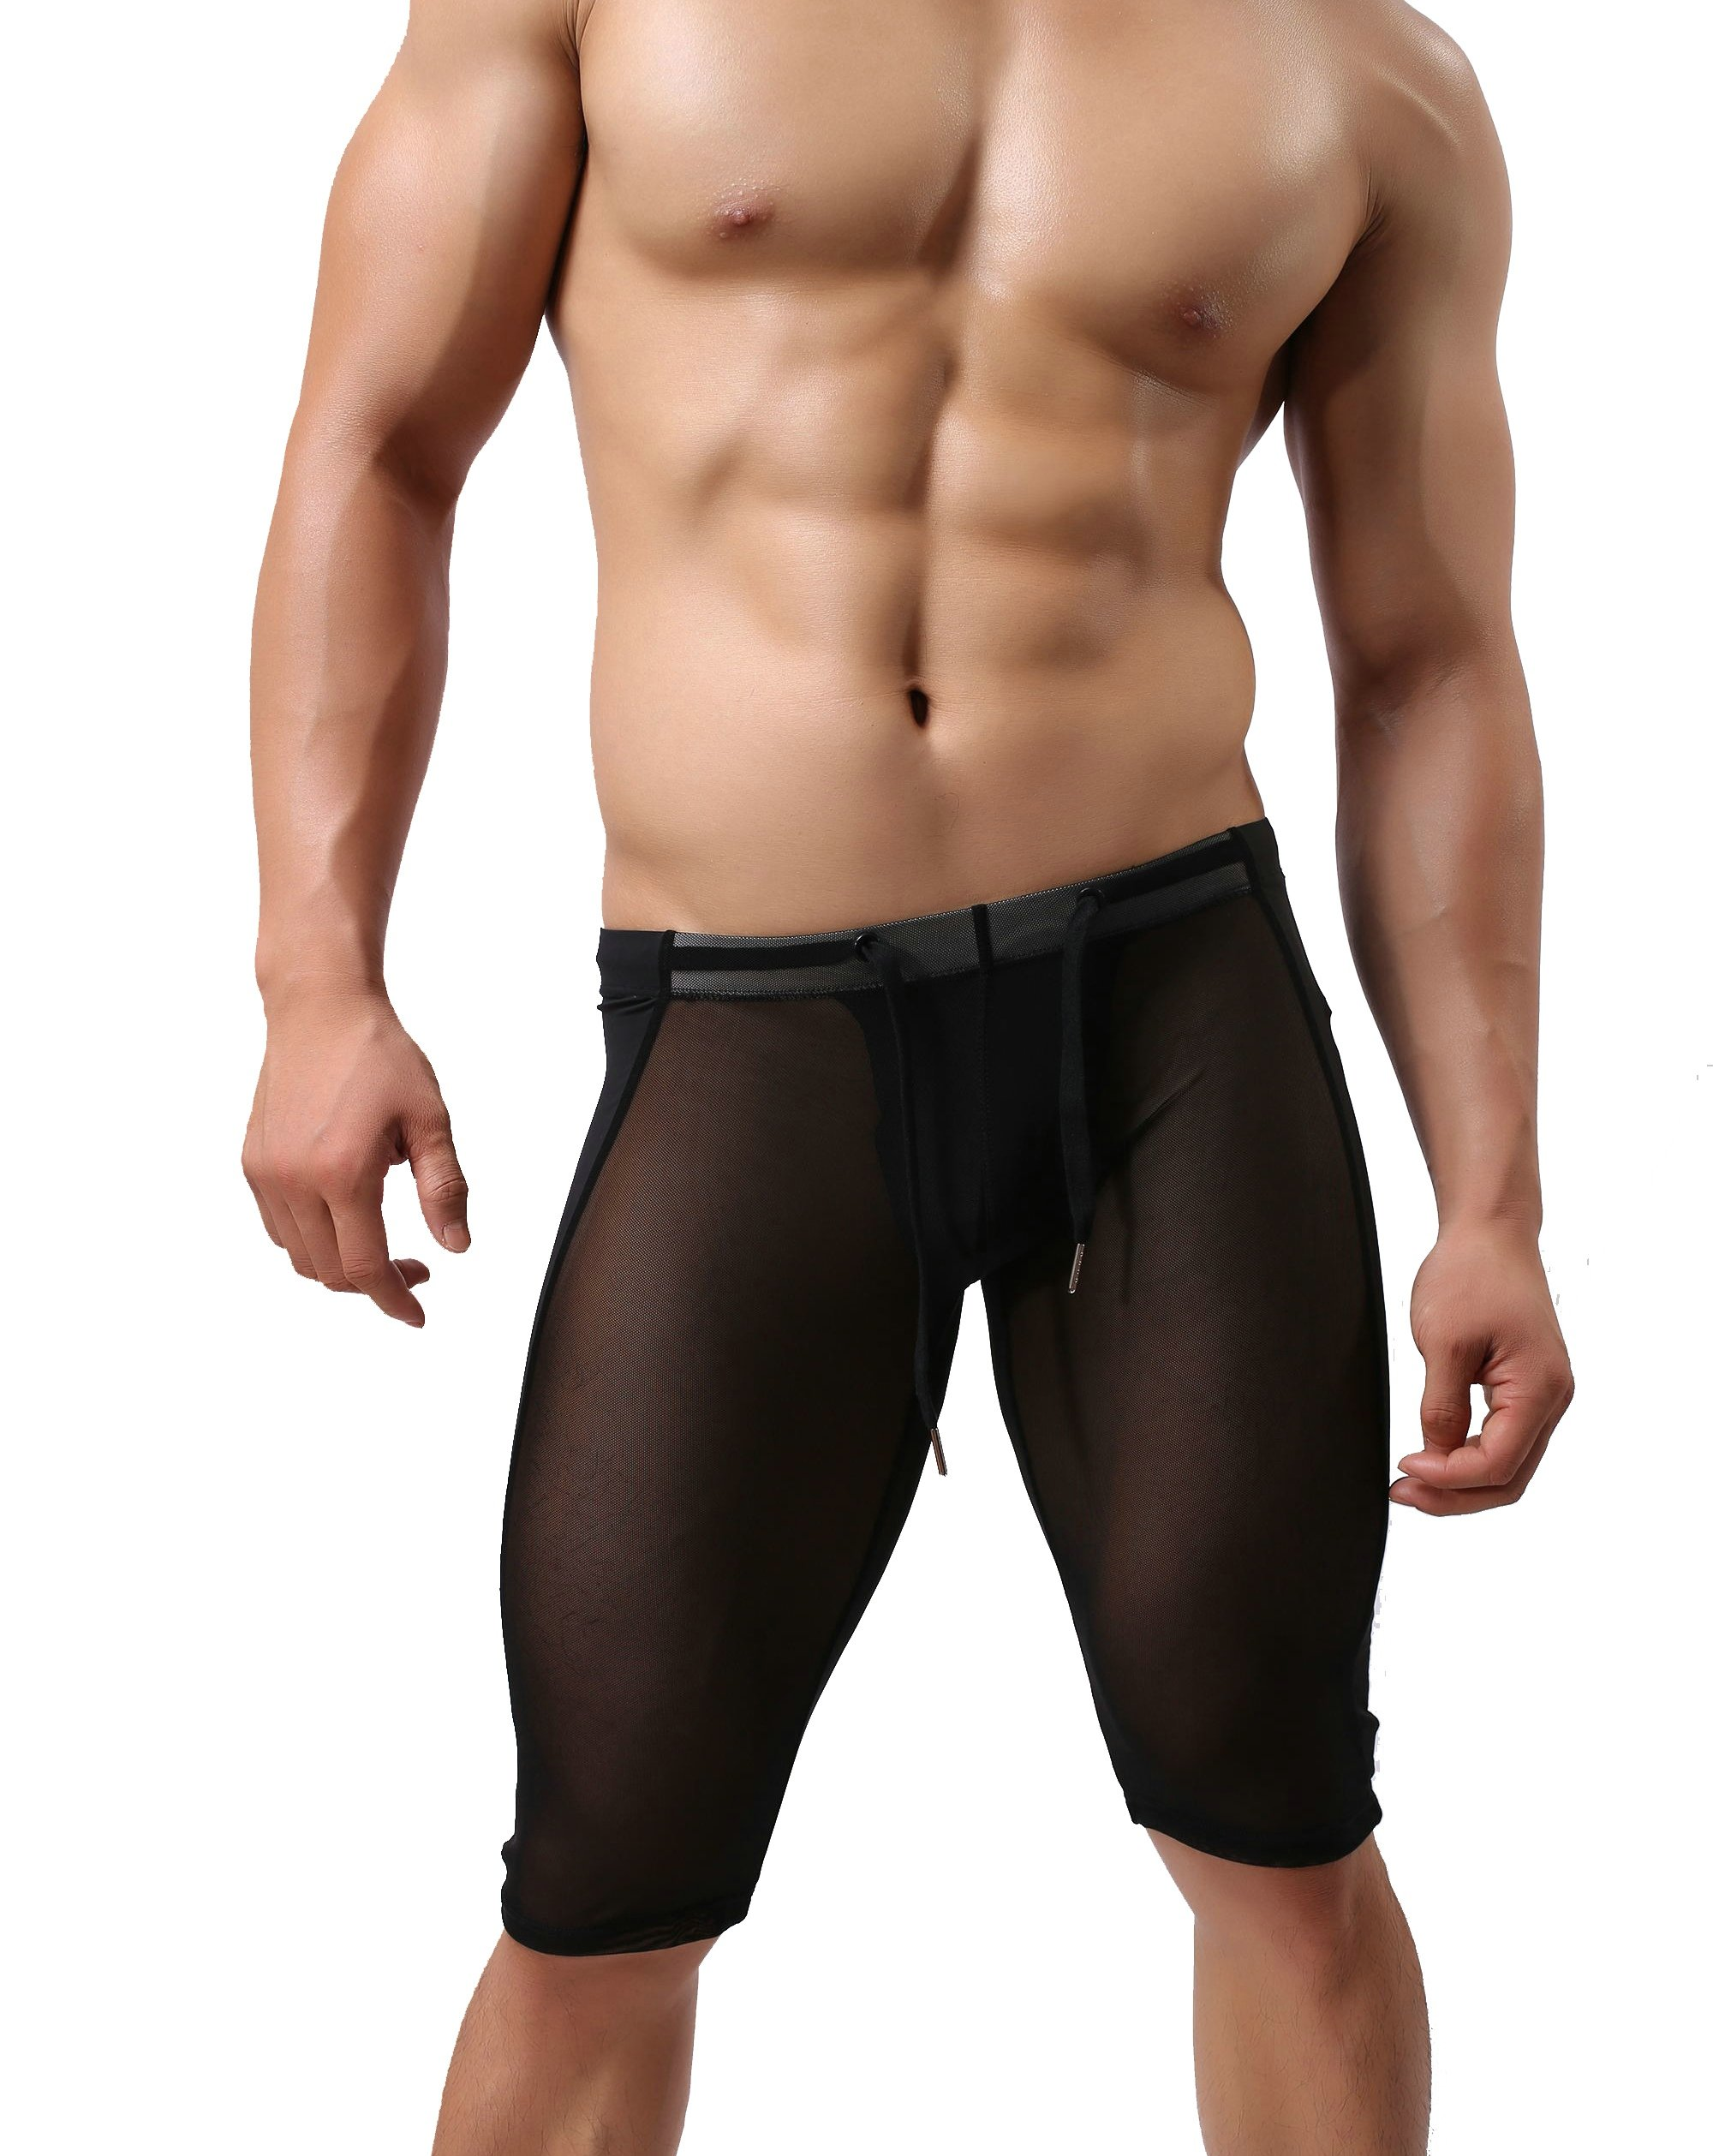 MuscleMate® UltraHot Men's Compression Shorts, Hot See Shorts Multi-Functional Men's Shorts, Fun Foreplay Ultimate Sexiness(Black, S)